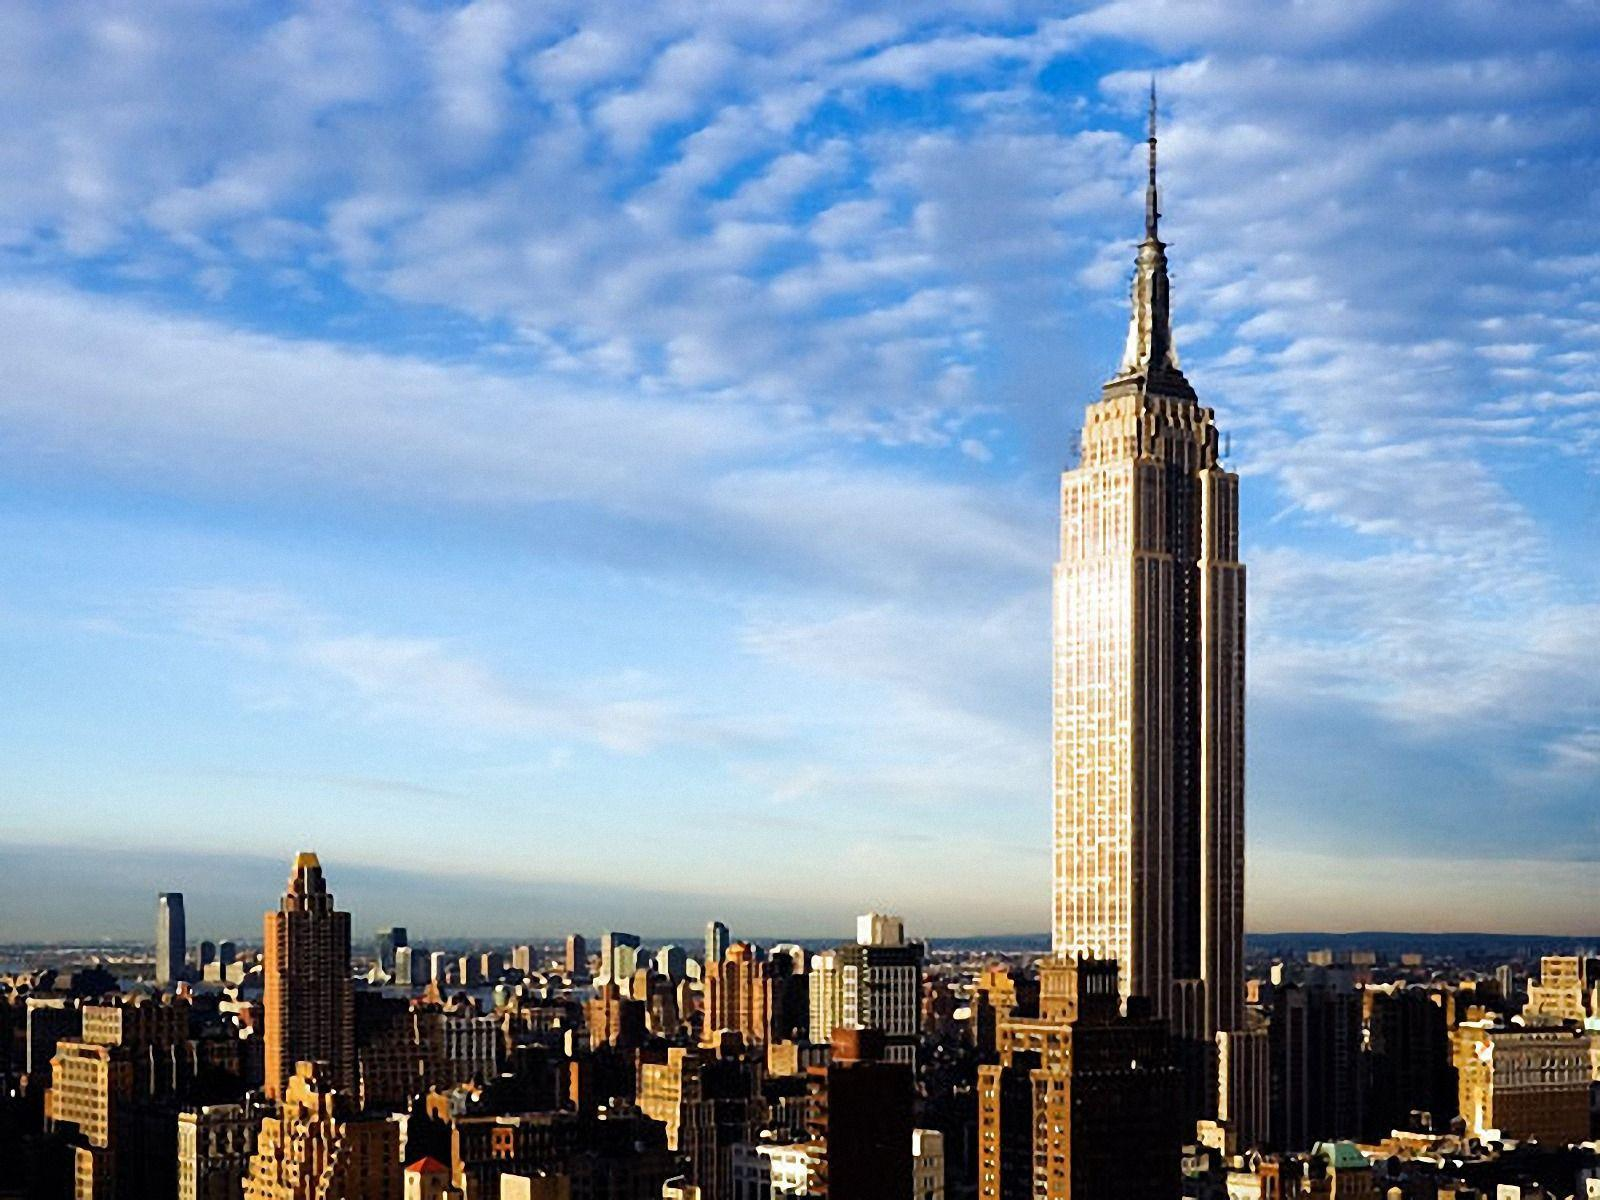 For Your Desktop: Empire State Building Wallpapers, 41 Top Quality